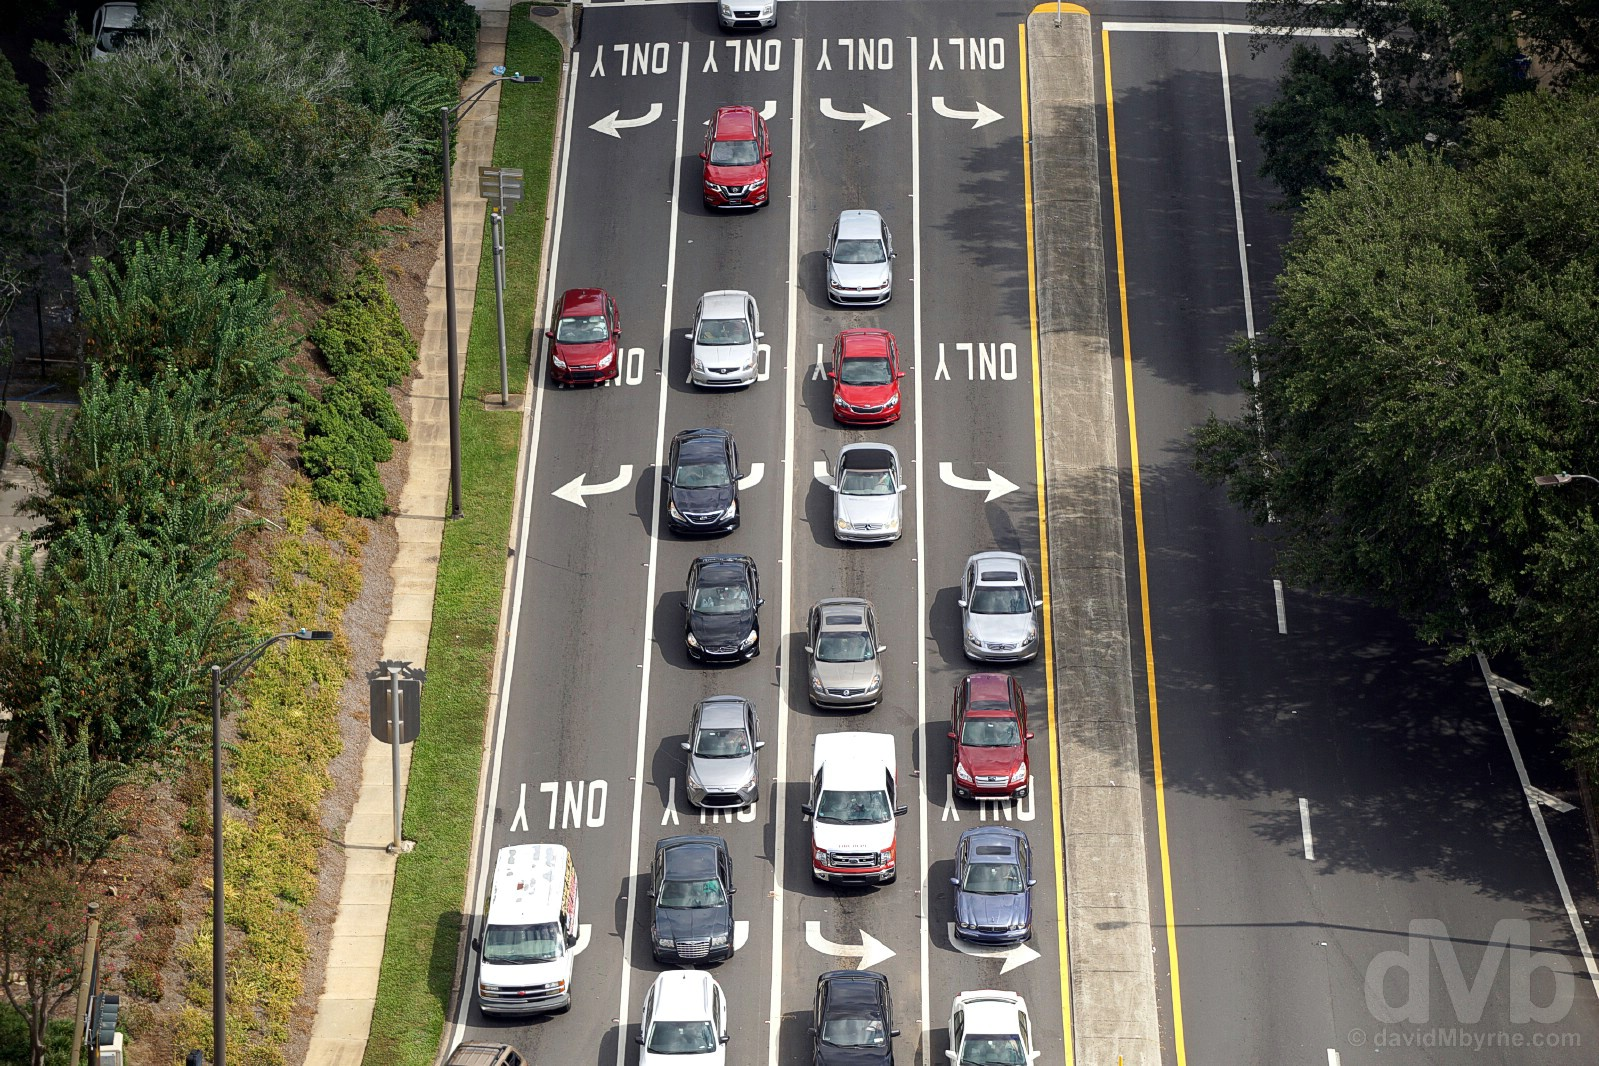 A road junction as seen from the 22nd-floor observation deck of the State Capitol in Tallahassee, Florida. October 11, 2017.